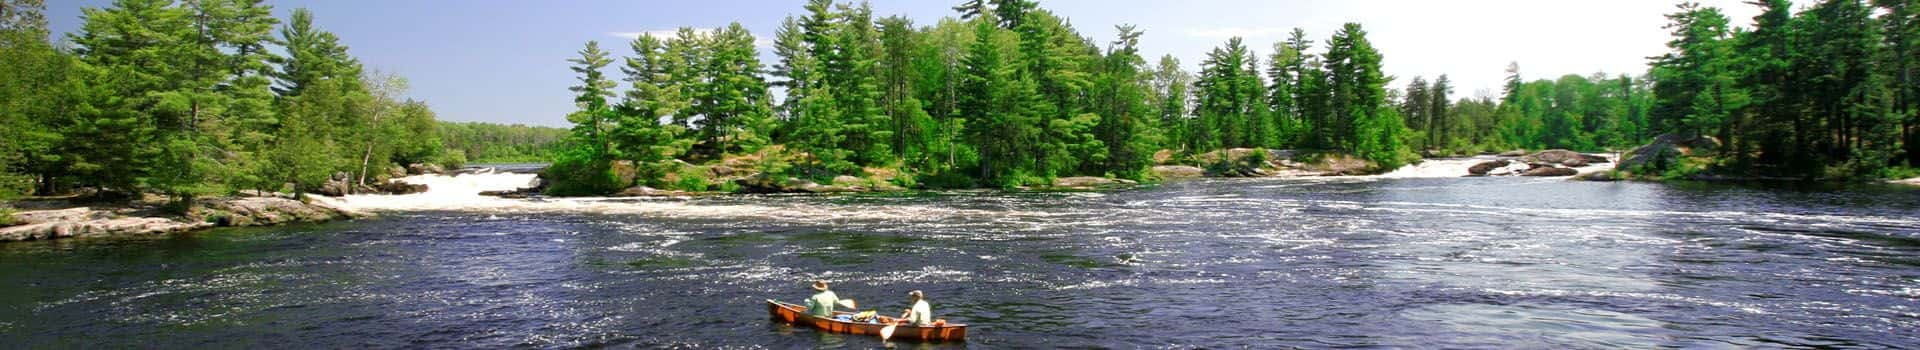 Boundary Waters Canoe Area Wilderness